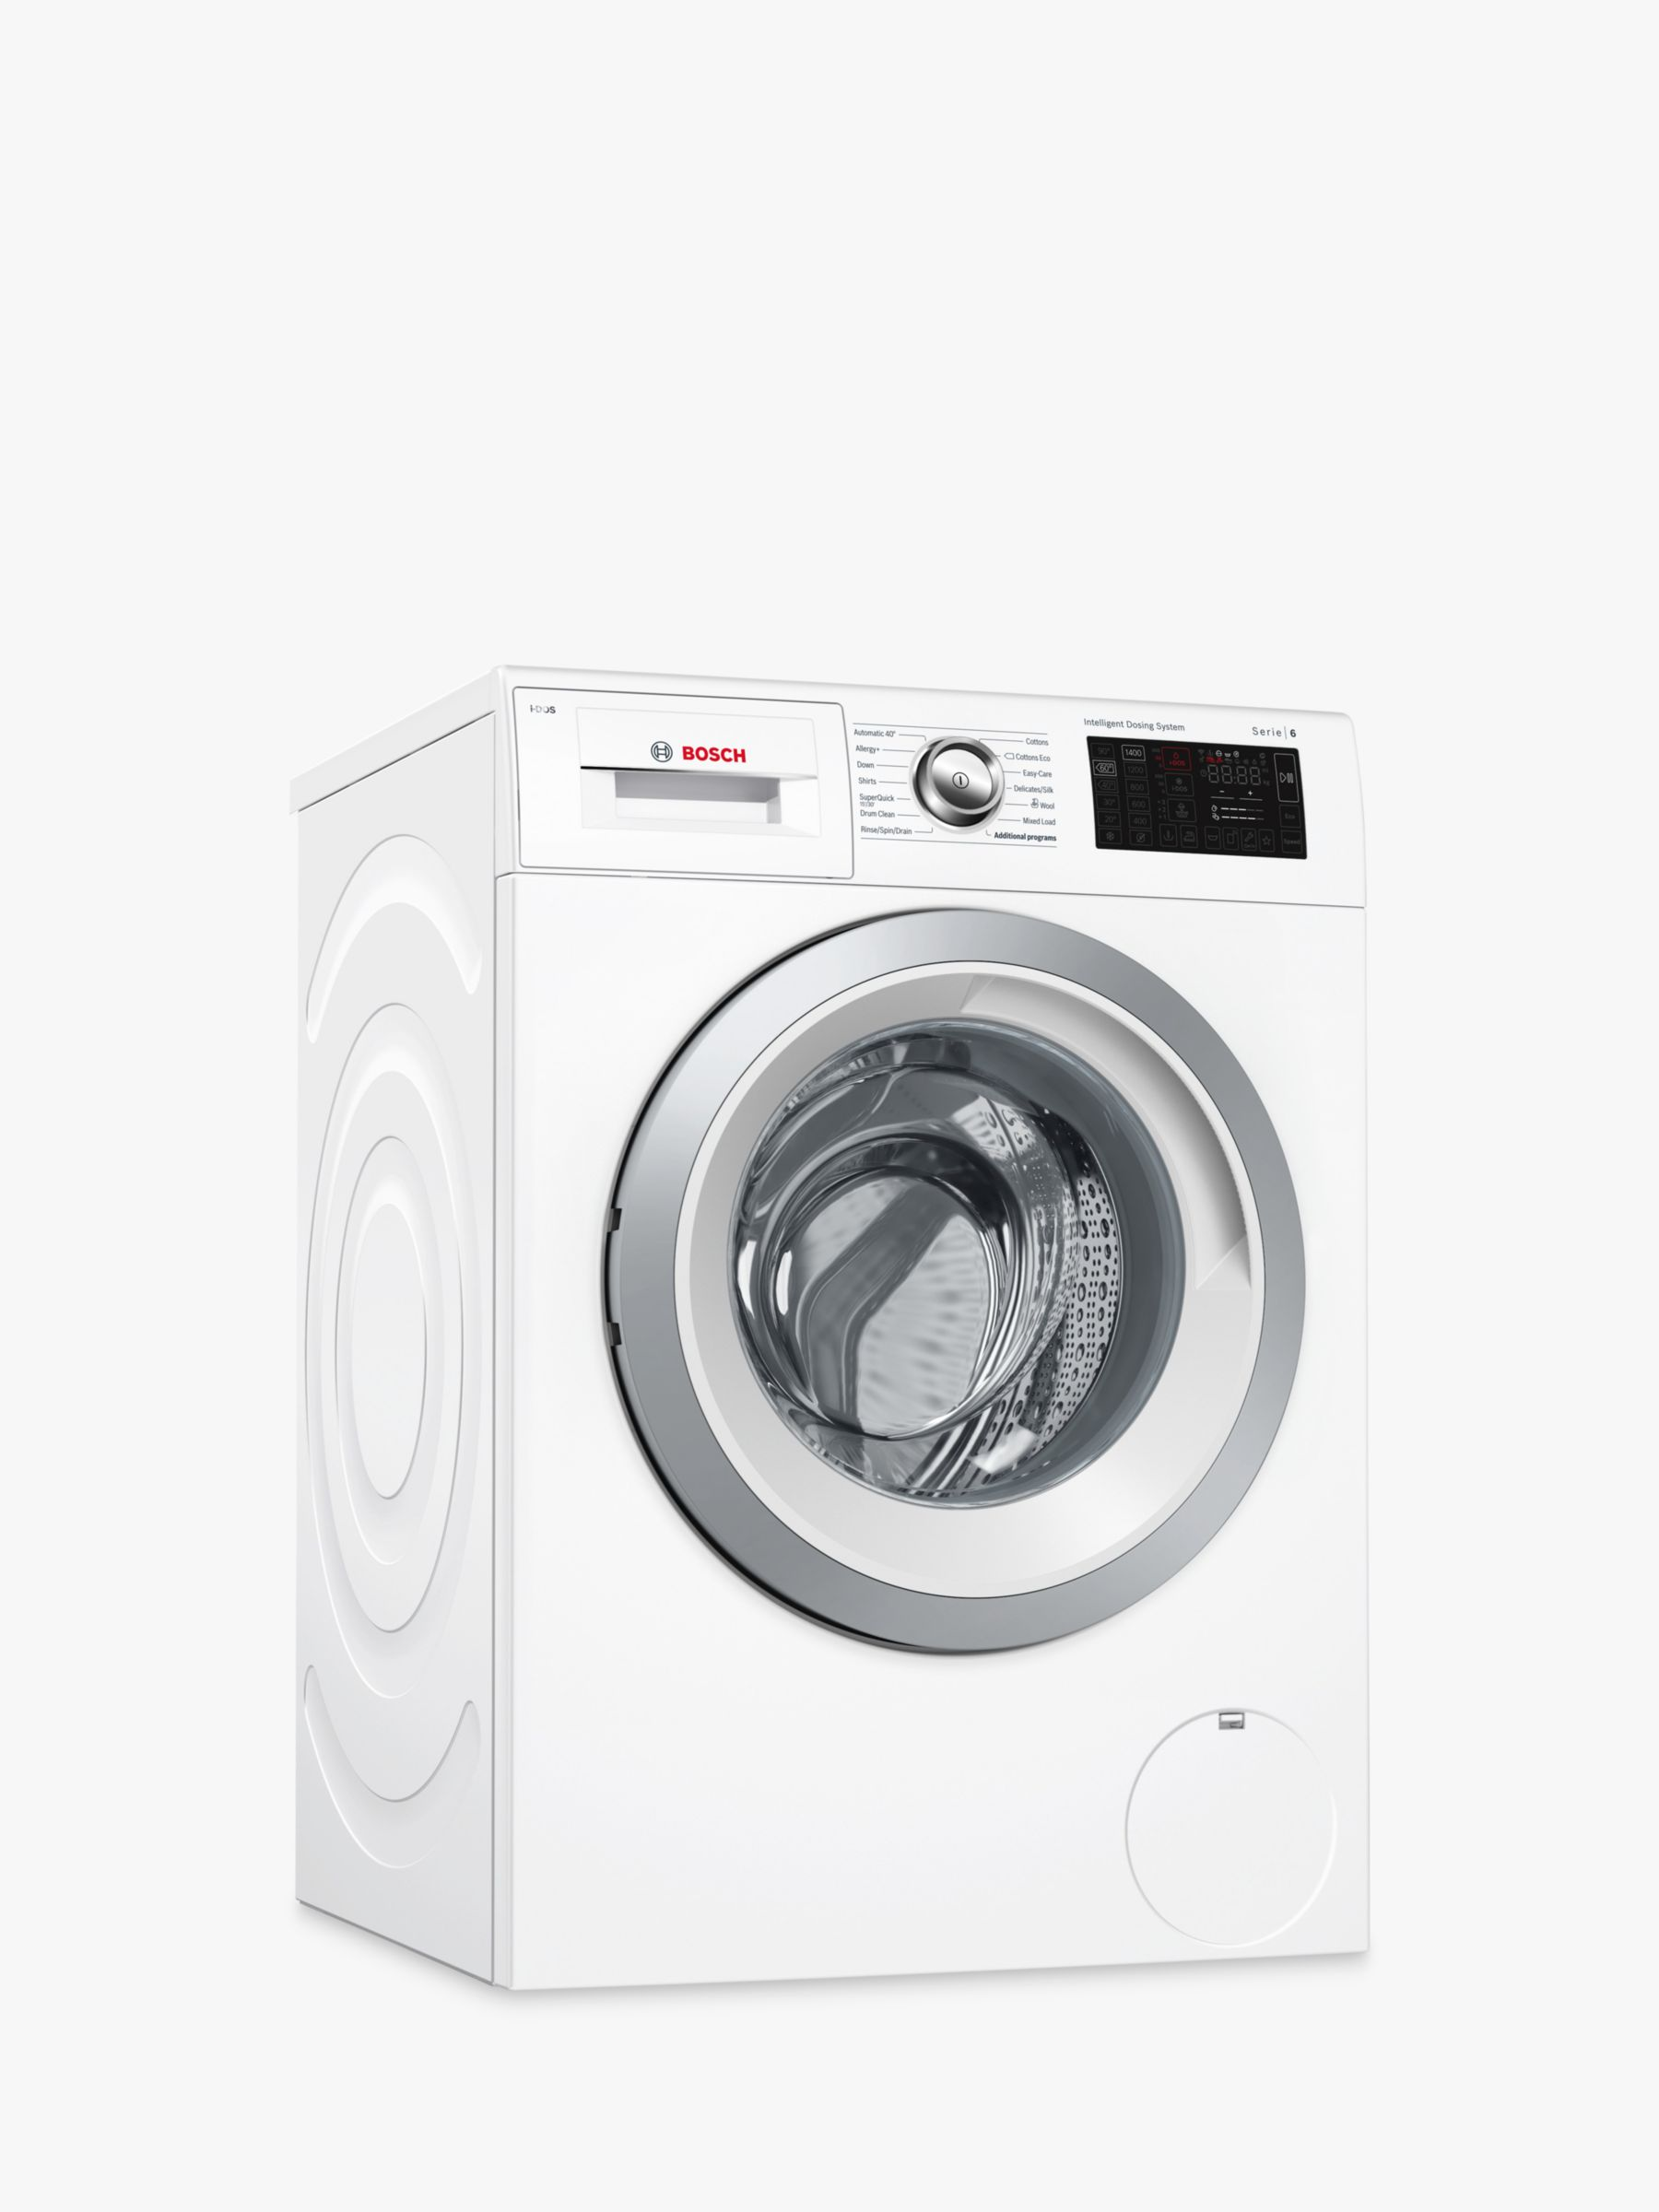 Bosch Bosch WAT286H0GB Freestanding Washing Machine, 9kg Load, A+++ Energy Rating, 1400rpm Spin, White